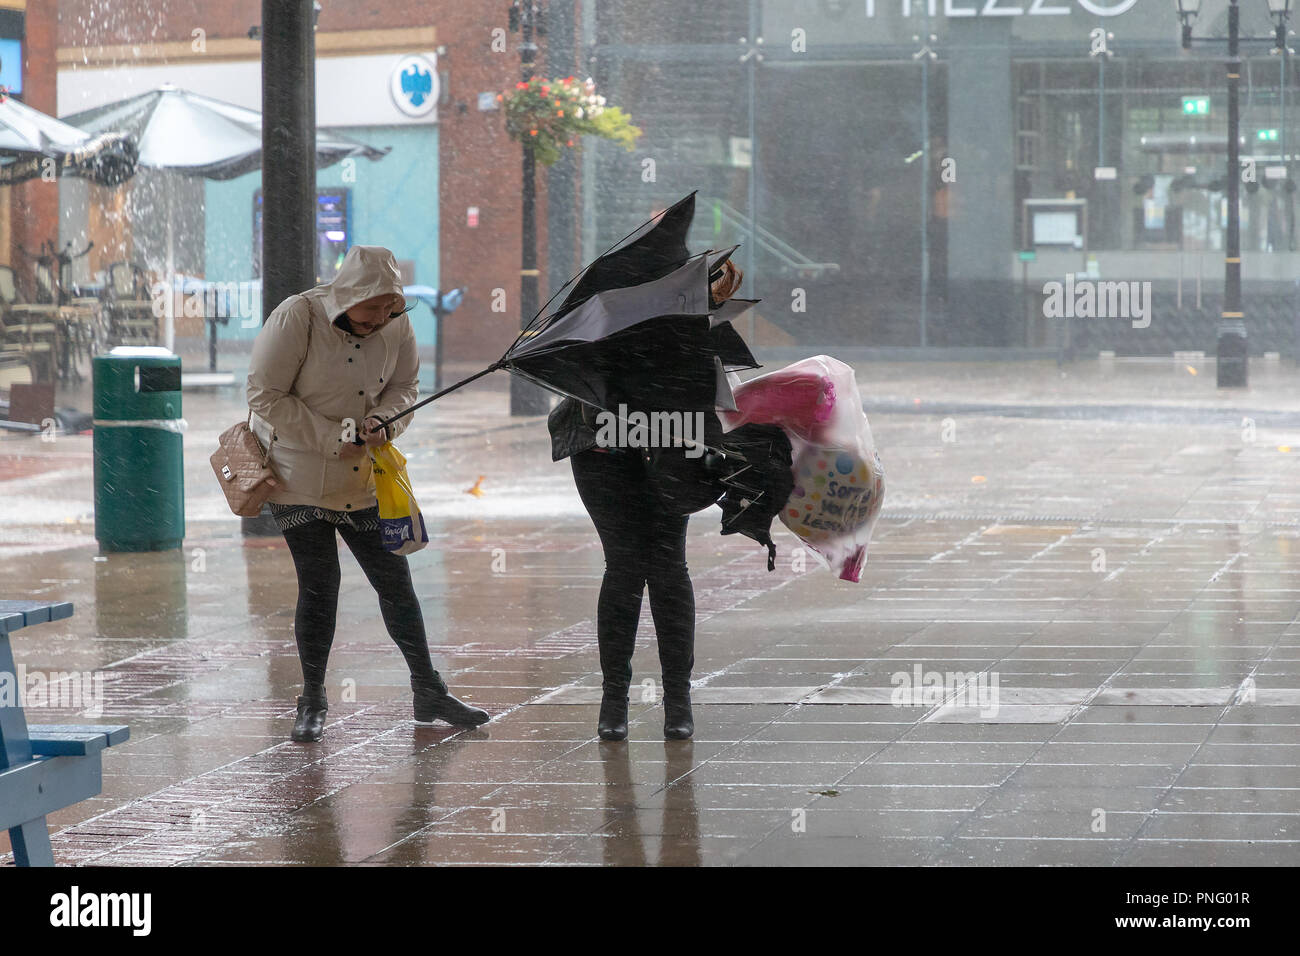 Warrington Town Centre, Cheshire, England, UK - 21 September 2018 - Weather -  Late afternoon and the gale force winds of Storm Bronagh,  the second storm of the UK winter within days, increased their intensity, with gusts of over 50mph in Warrington, Cheshire. Pictured: People struggle to keep their umbrellas the right way round in the strong winds - Stock Image